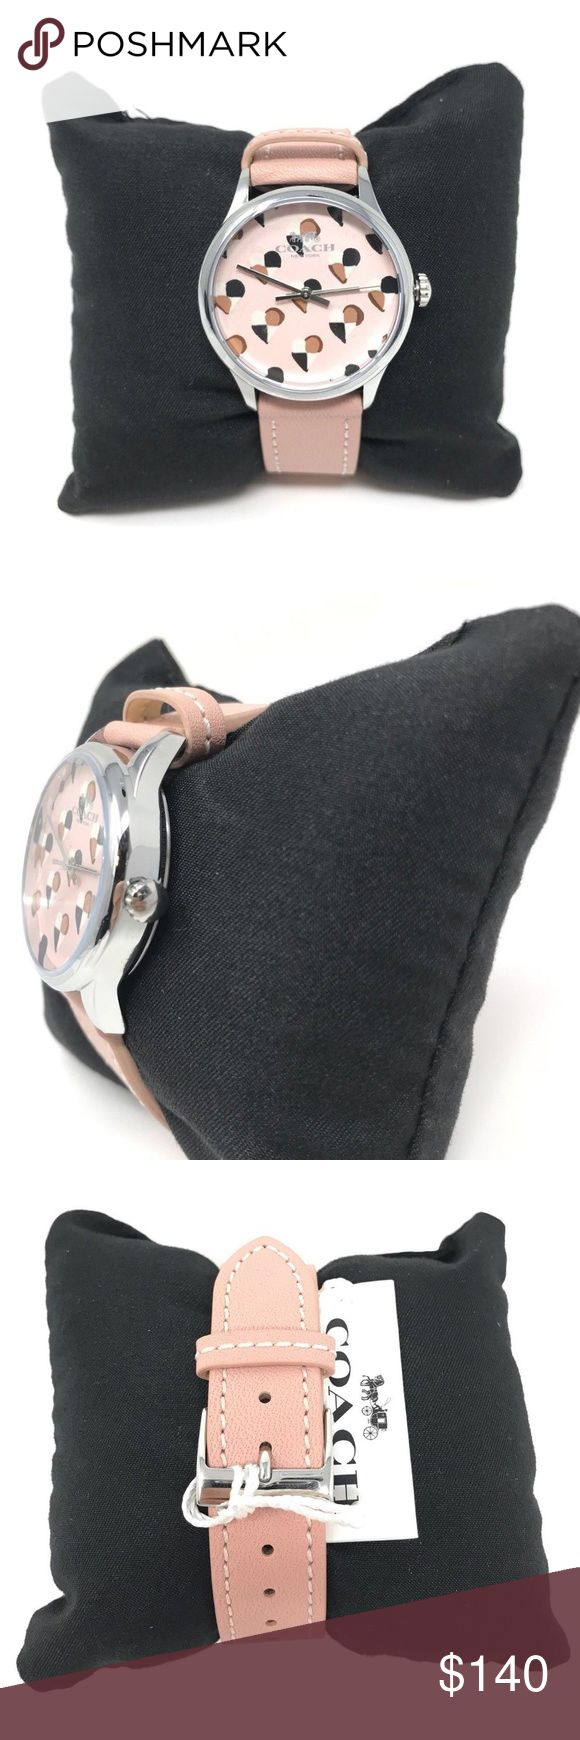 Coach Ruby Leather Strap Light Pink Women's Watch Coach Ruby Leather Strap 14502983 W1546 Light Pink Women's Watch  item# 273090081575  100% Authentic Coach!  Buy with confidence!  • MSRP: $175.00  • Style: 14502983  Features:  • Stainless steel case and leather strap  • Approx. case diameter: 32mm  • Quartz movement  • Mineral crystal  • Buckle closure  • Water-resistant to 99 feet  Please feel free to ask any questions. Happy shopping! Coach Accessories Watches